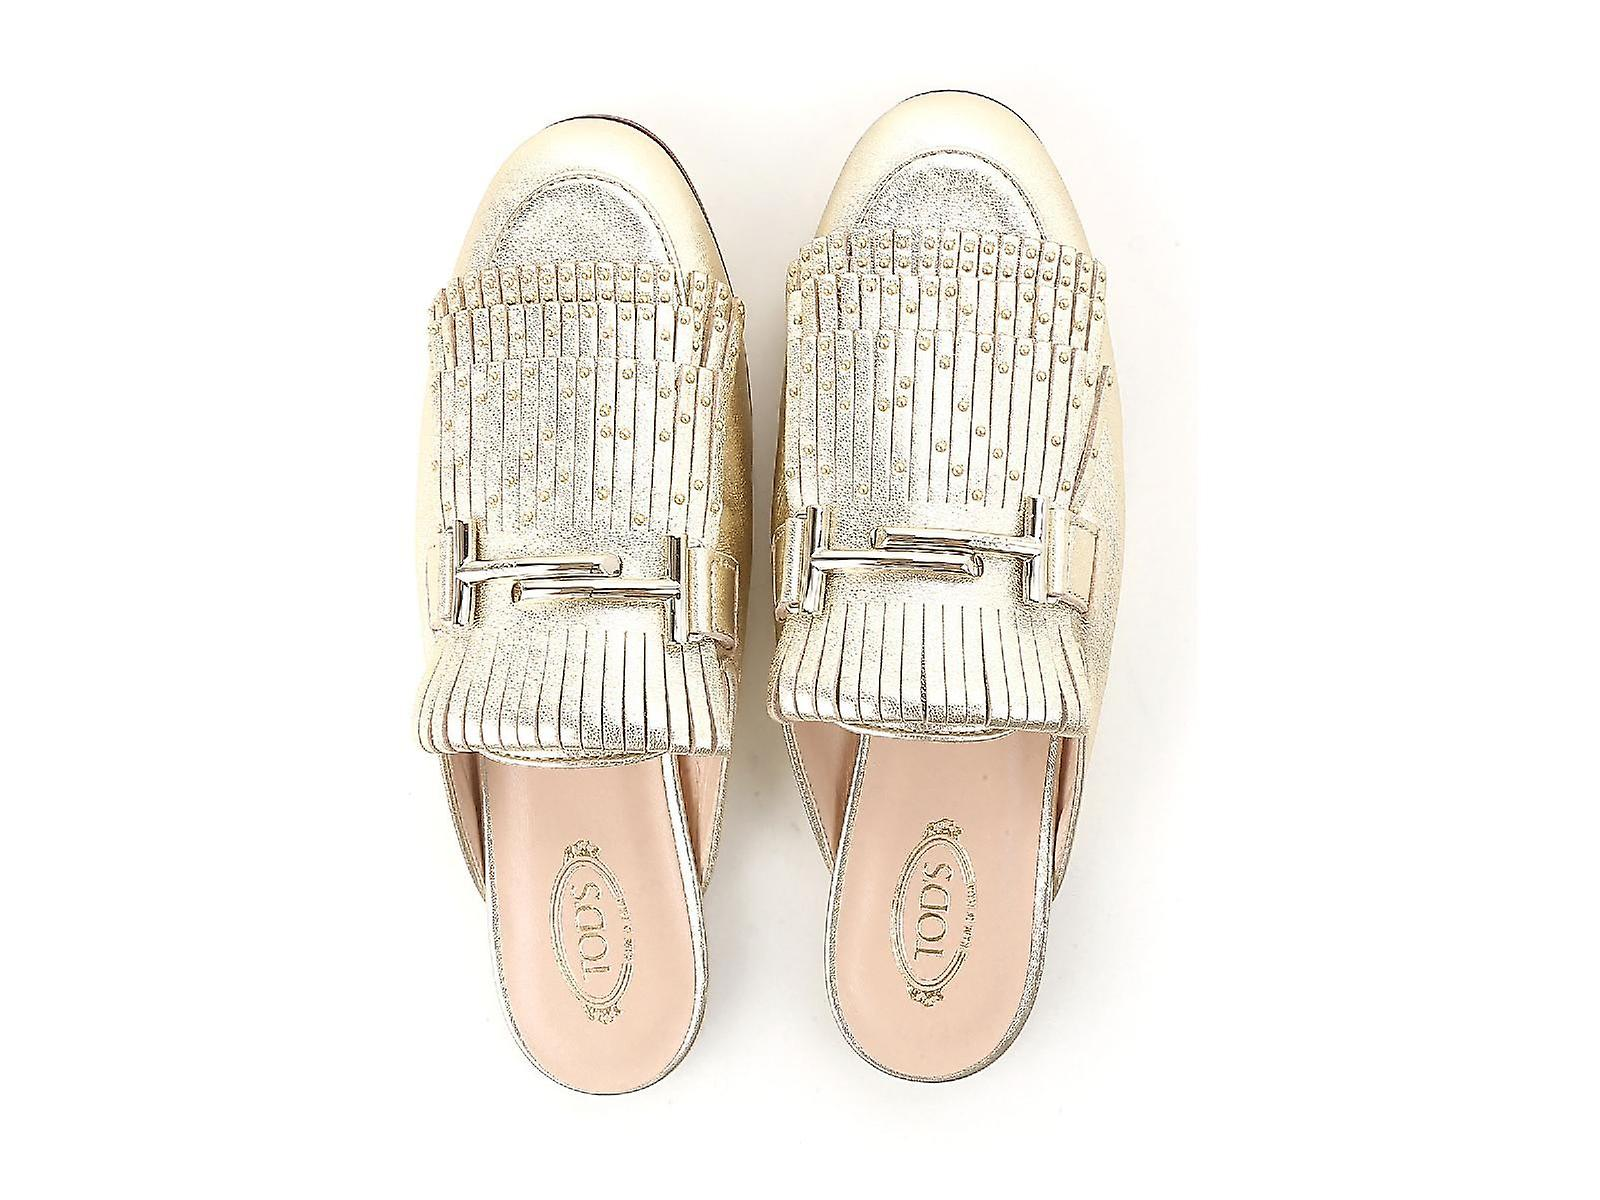 Tod's Flat Close Slide Sandals Shoes In Gold Metllic Leather